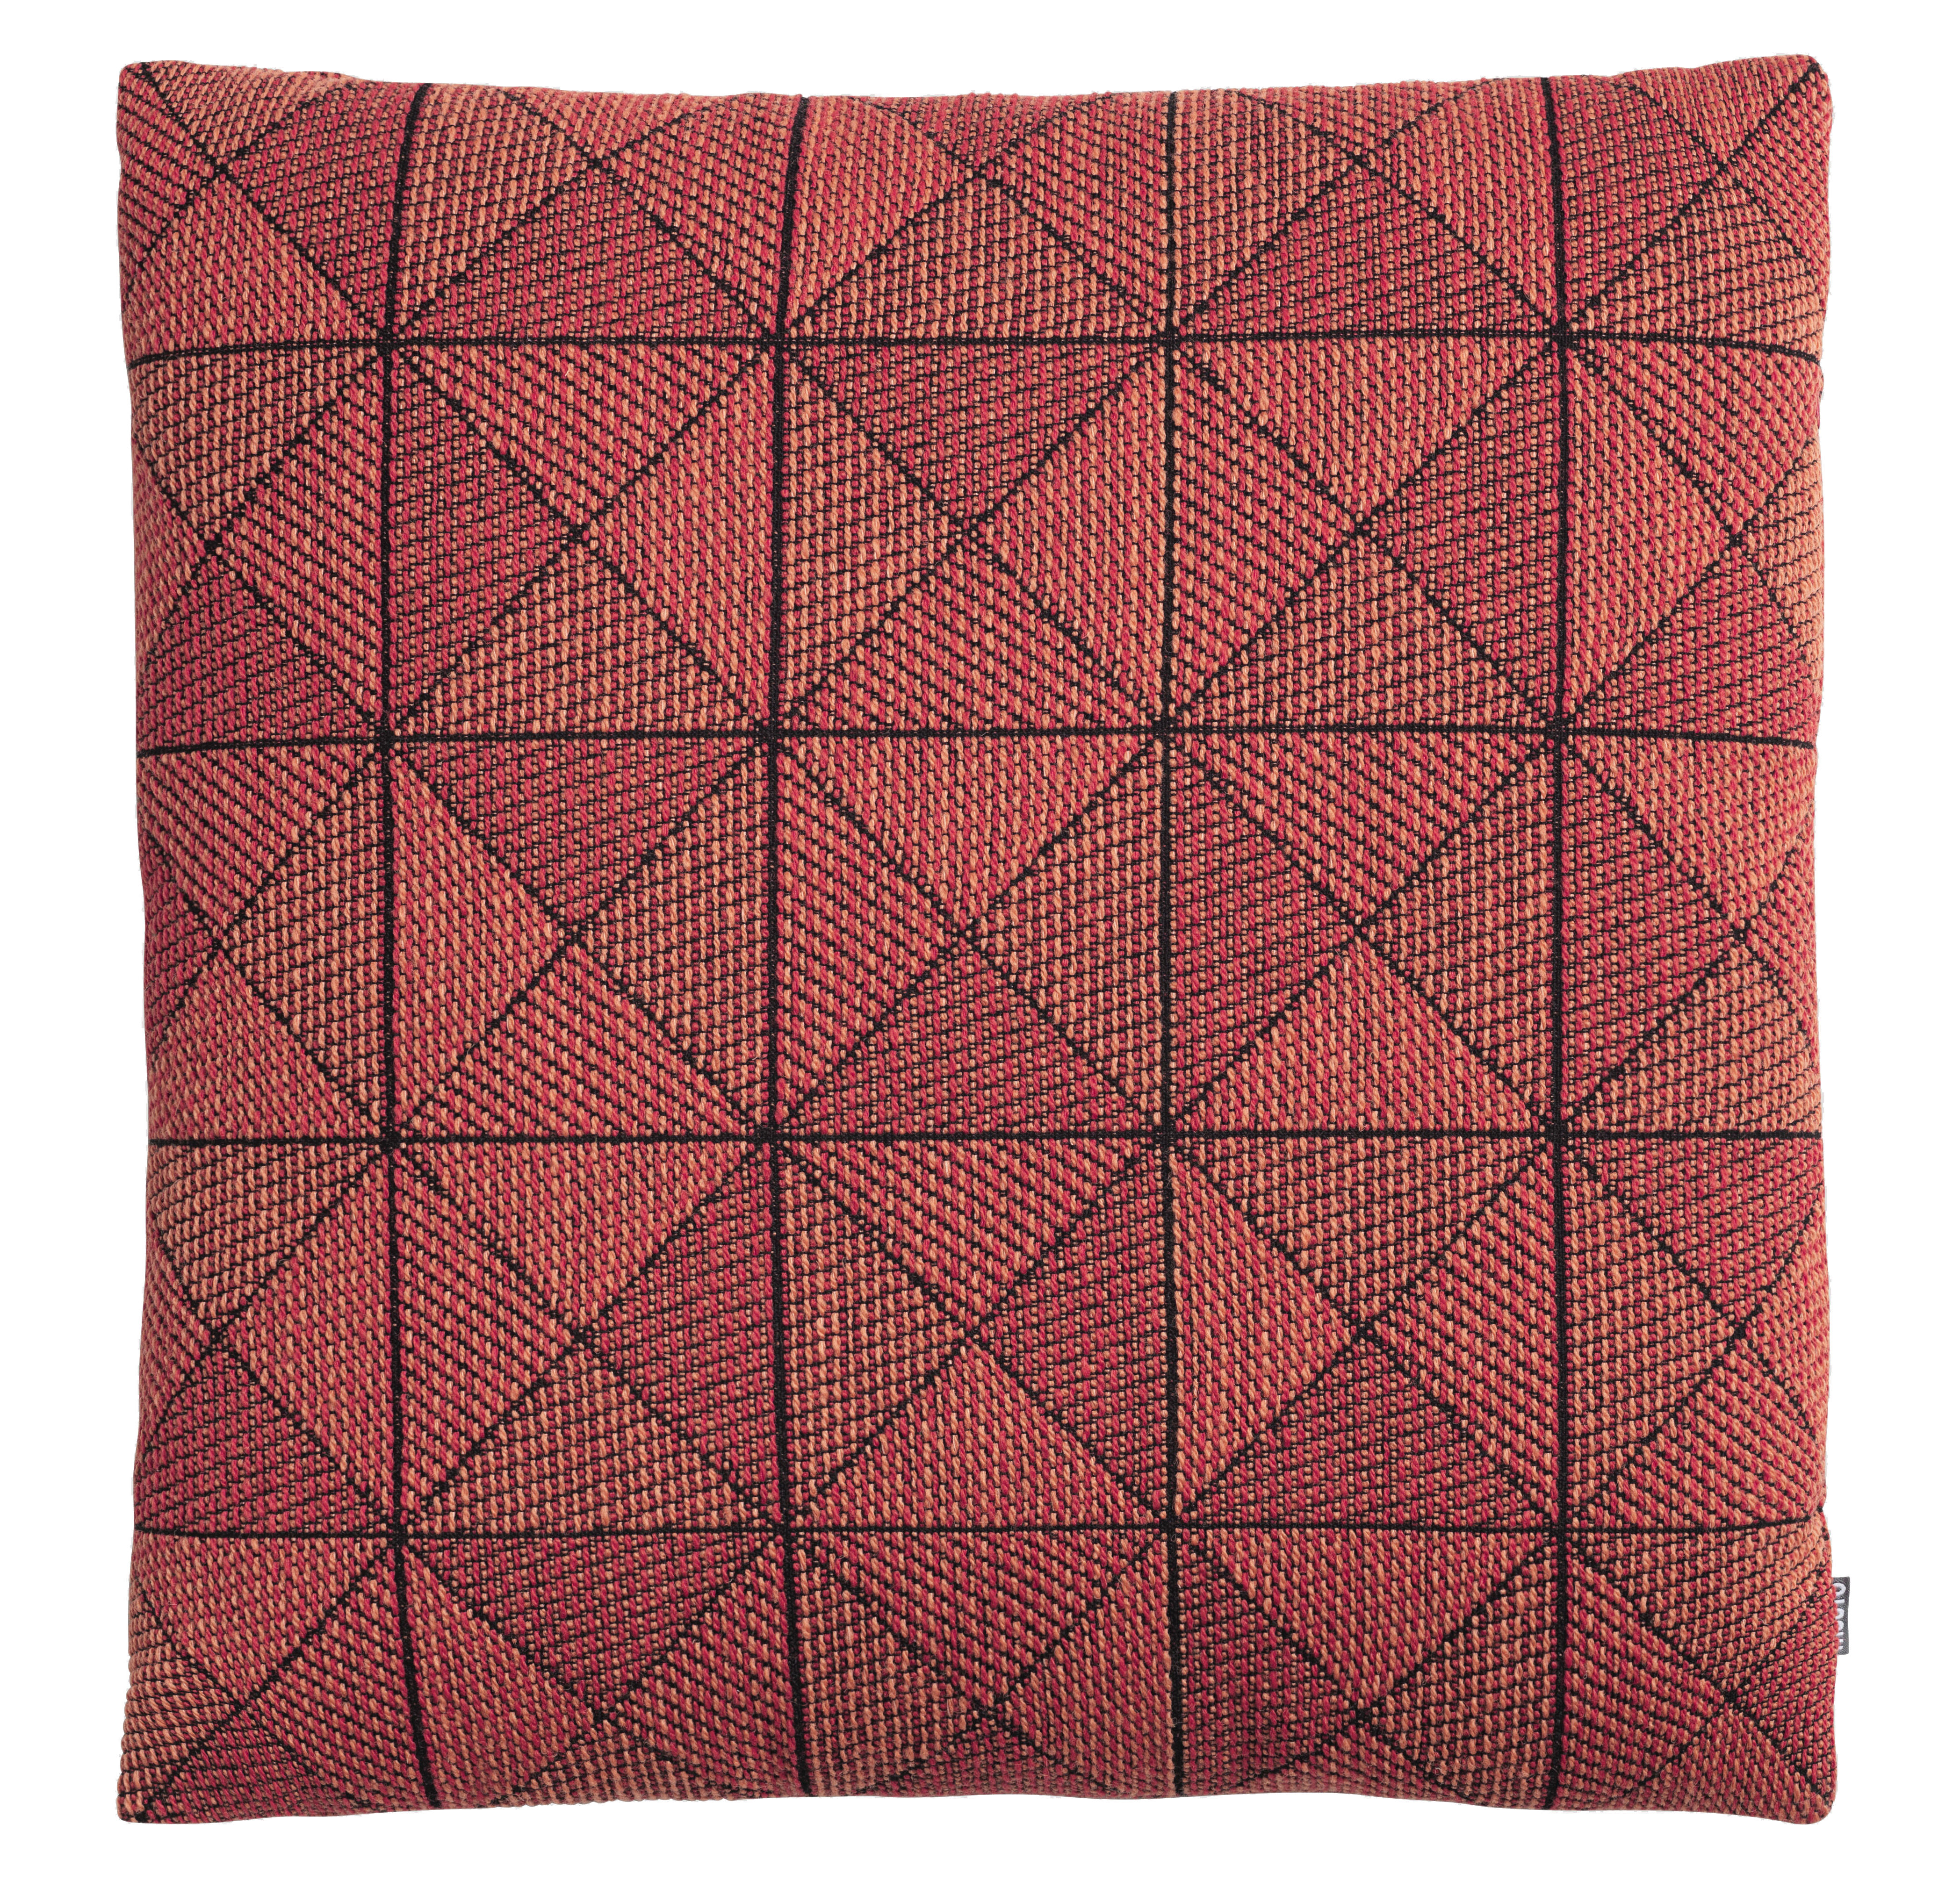 Decoration - Cushions & Poufs - Tile Cushion - 50 x 50 cm by Muuto - Tangerine - Down, New wool, Polyester fiber